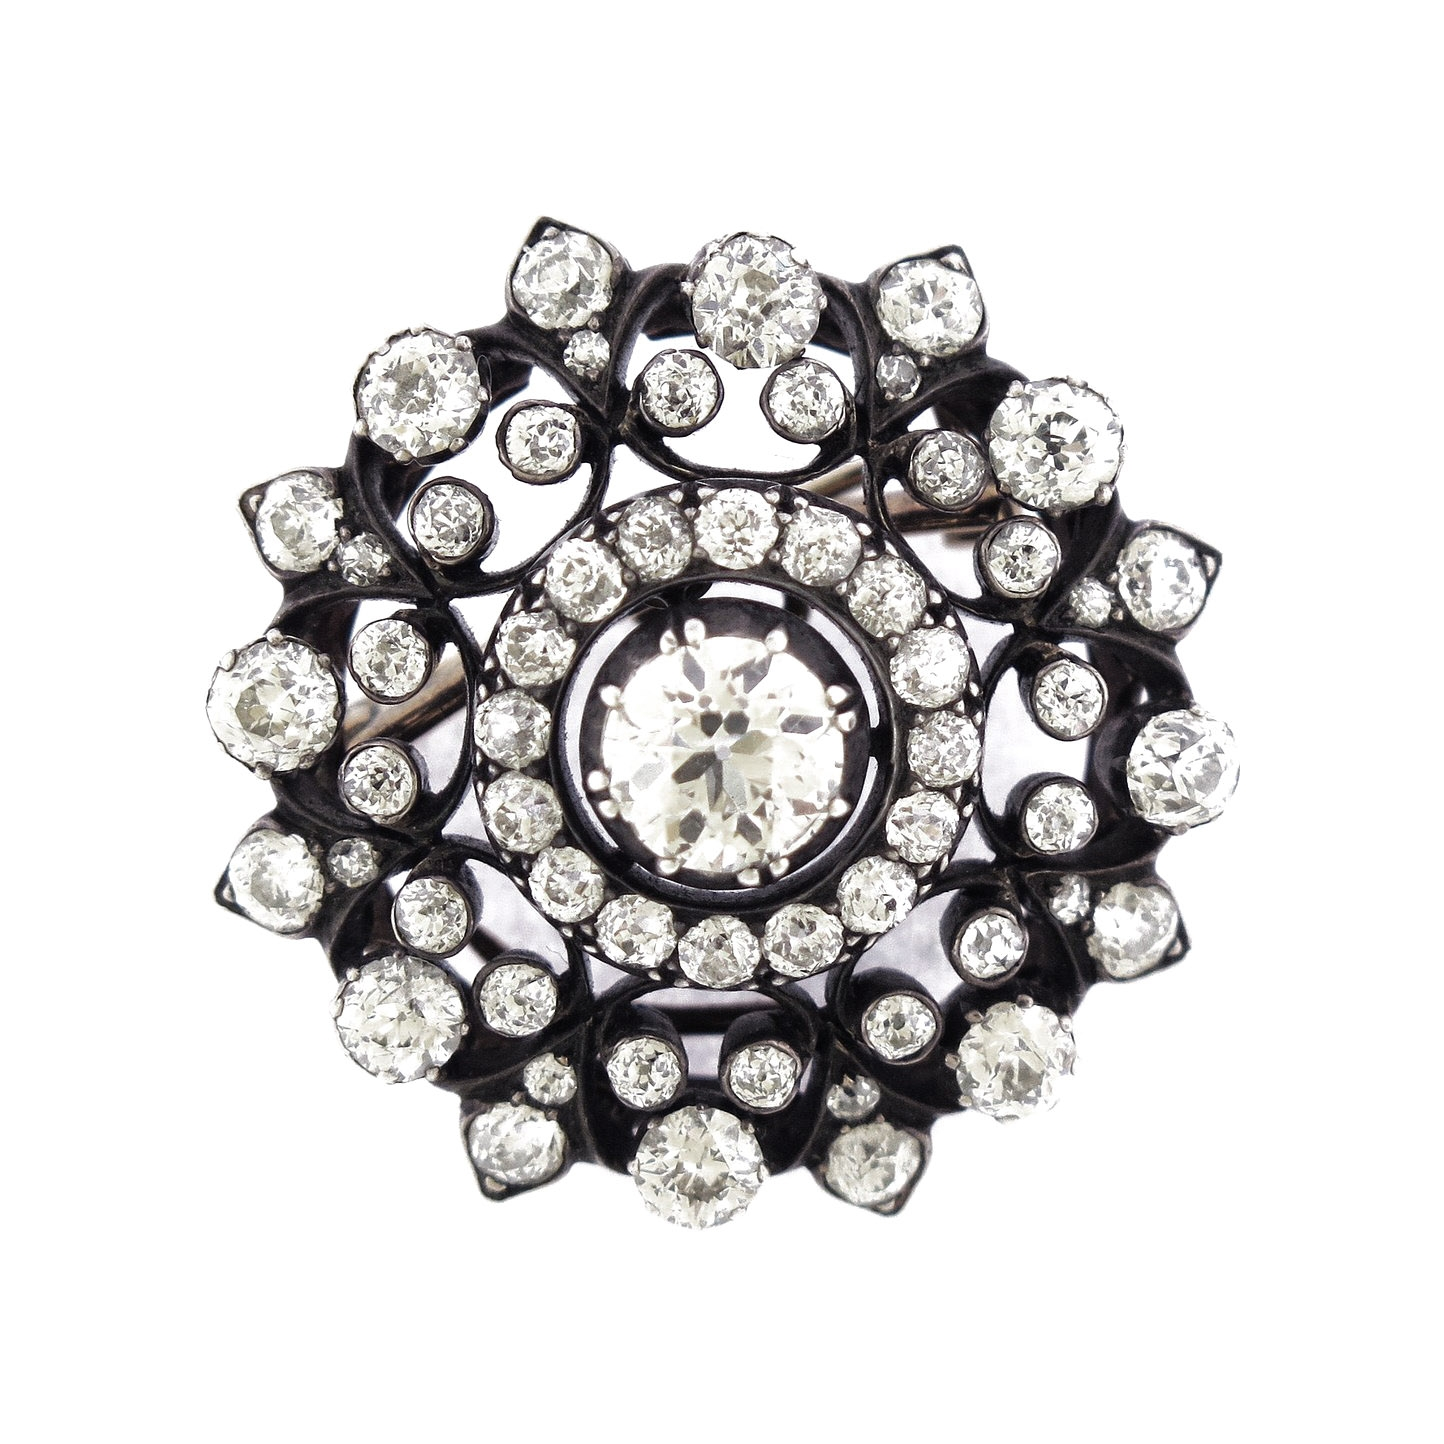 Pinwheel Diamond Brooch